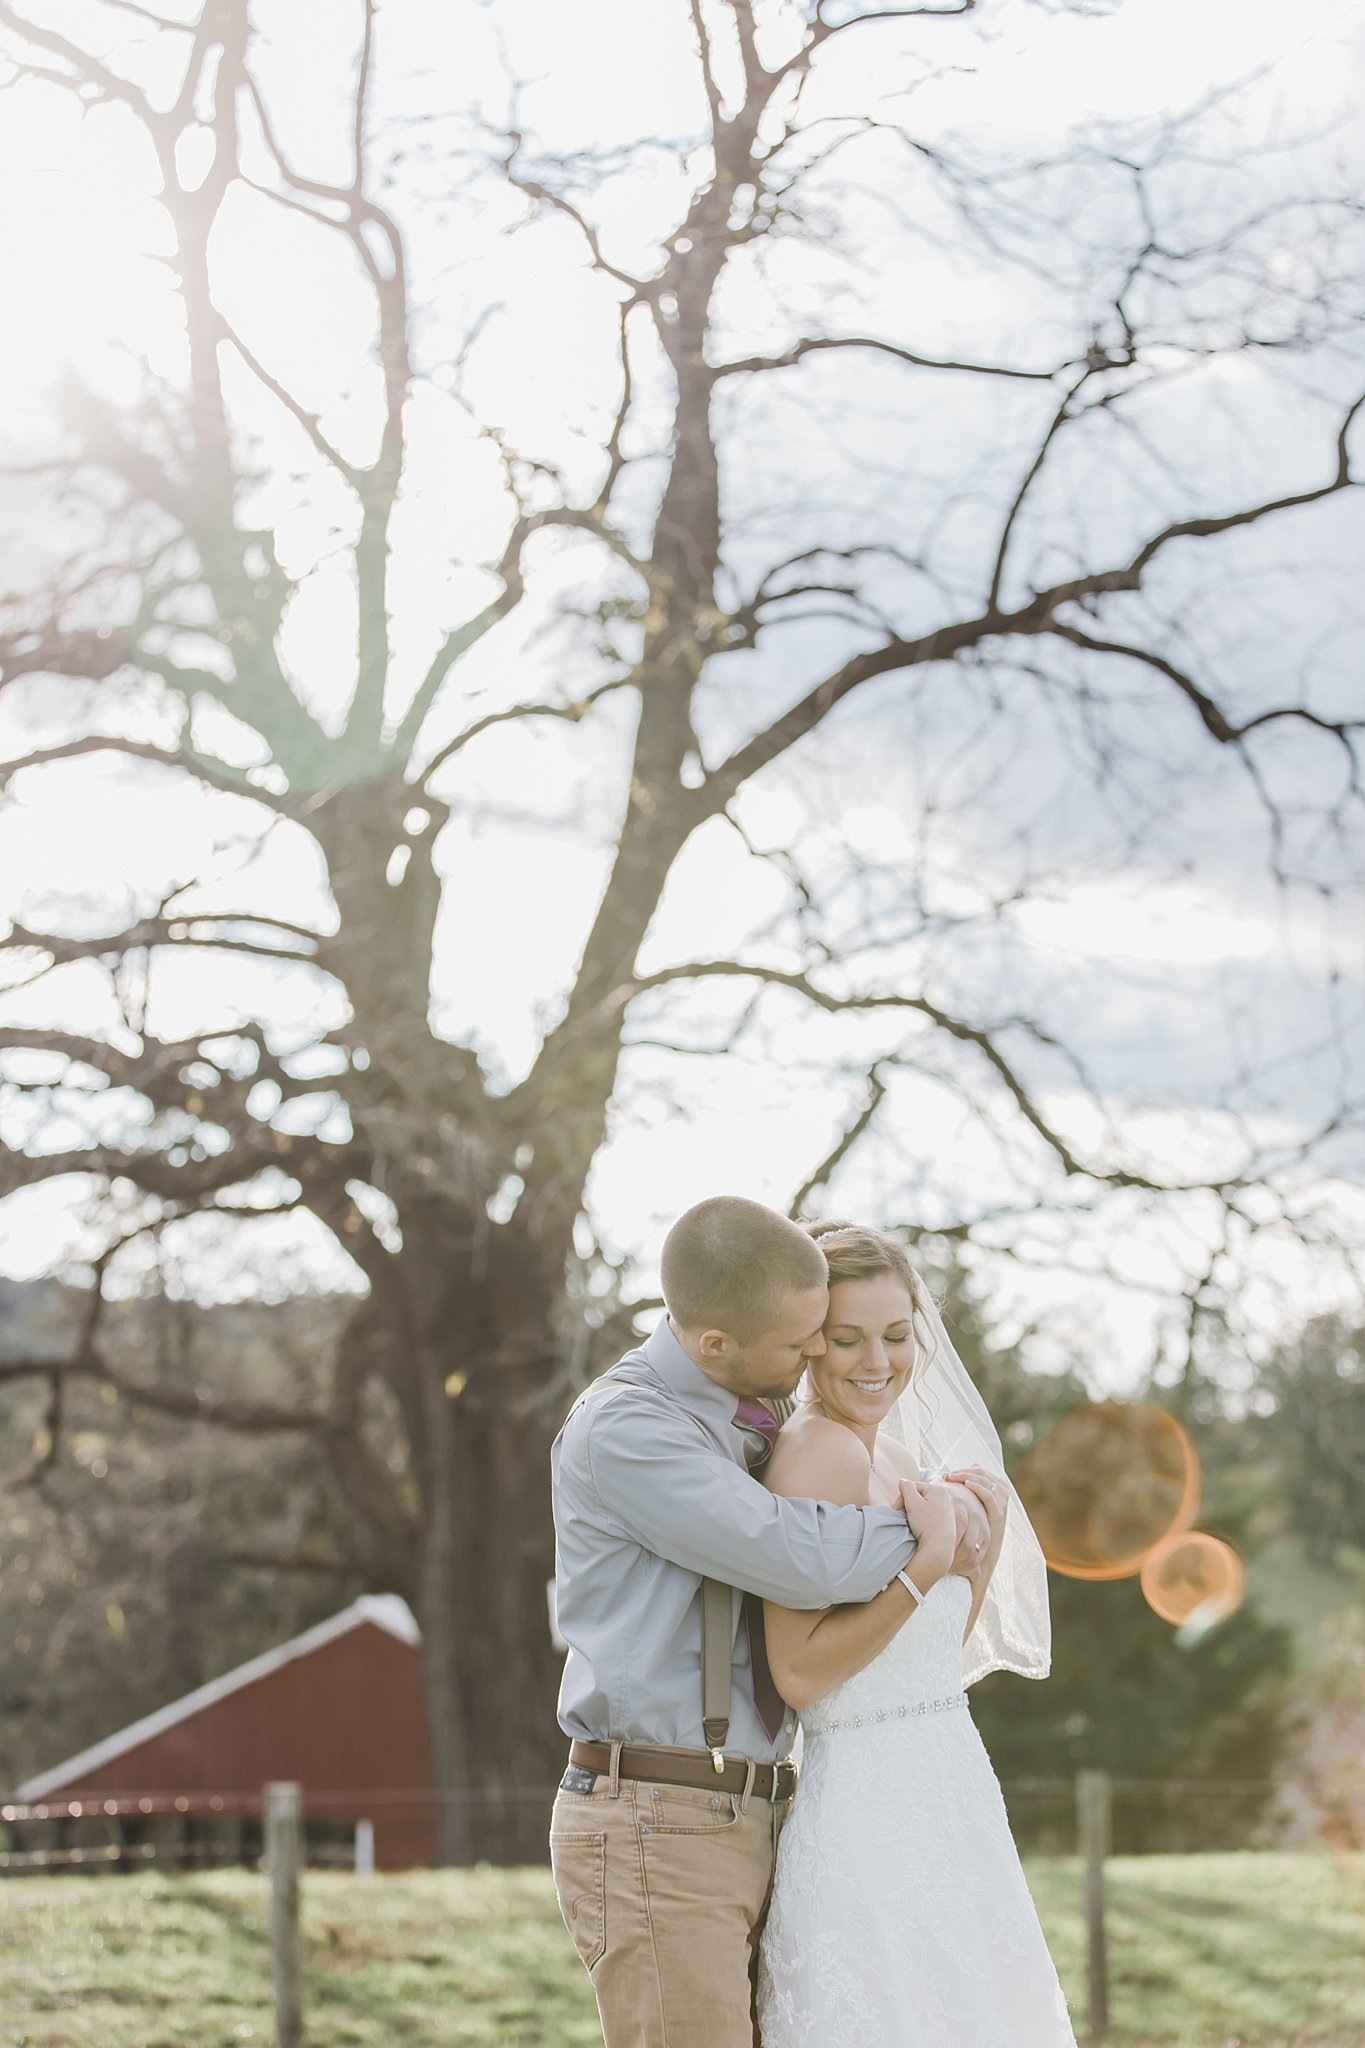 Smoker Barn Lancaster County beautiful fall wedding photography photo_0362.jpg